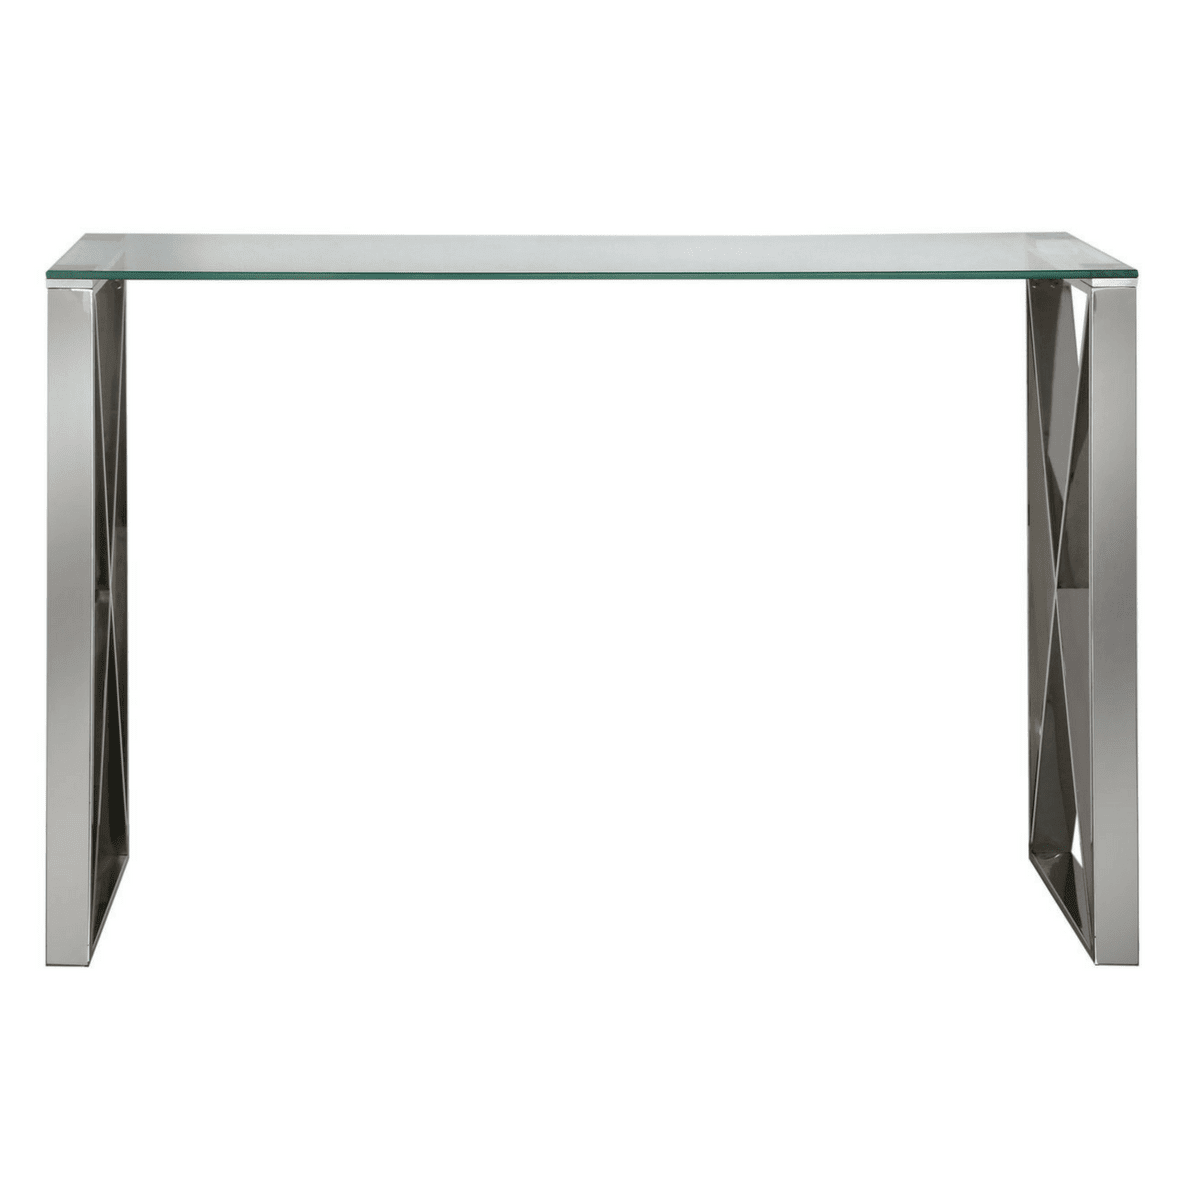 Zenith Stainless Steel Console Table Complete With A Clear Gl Top